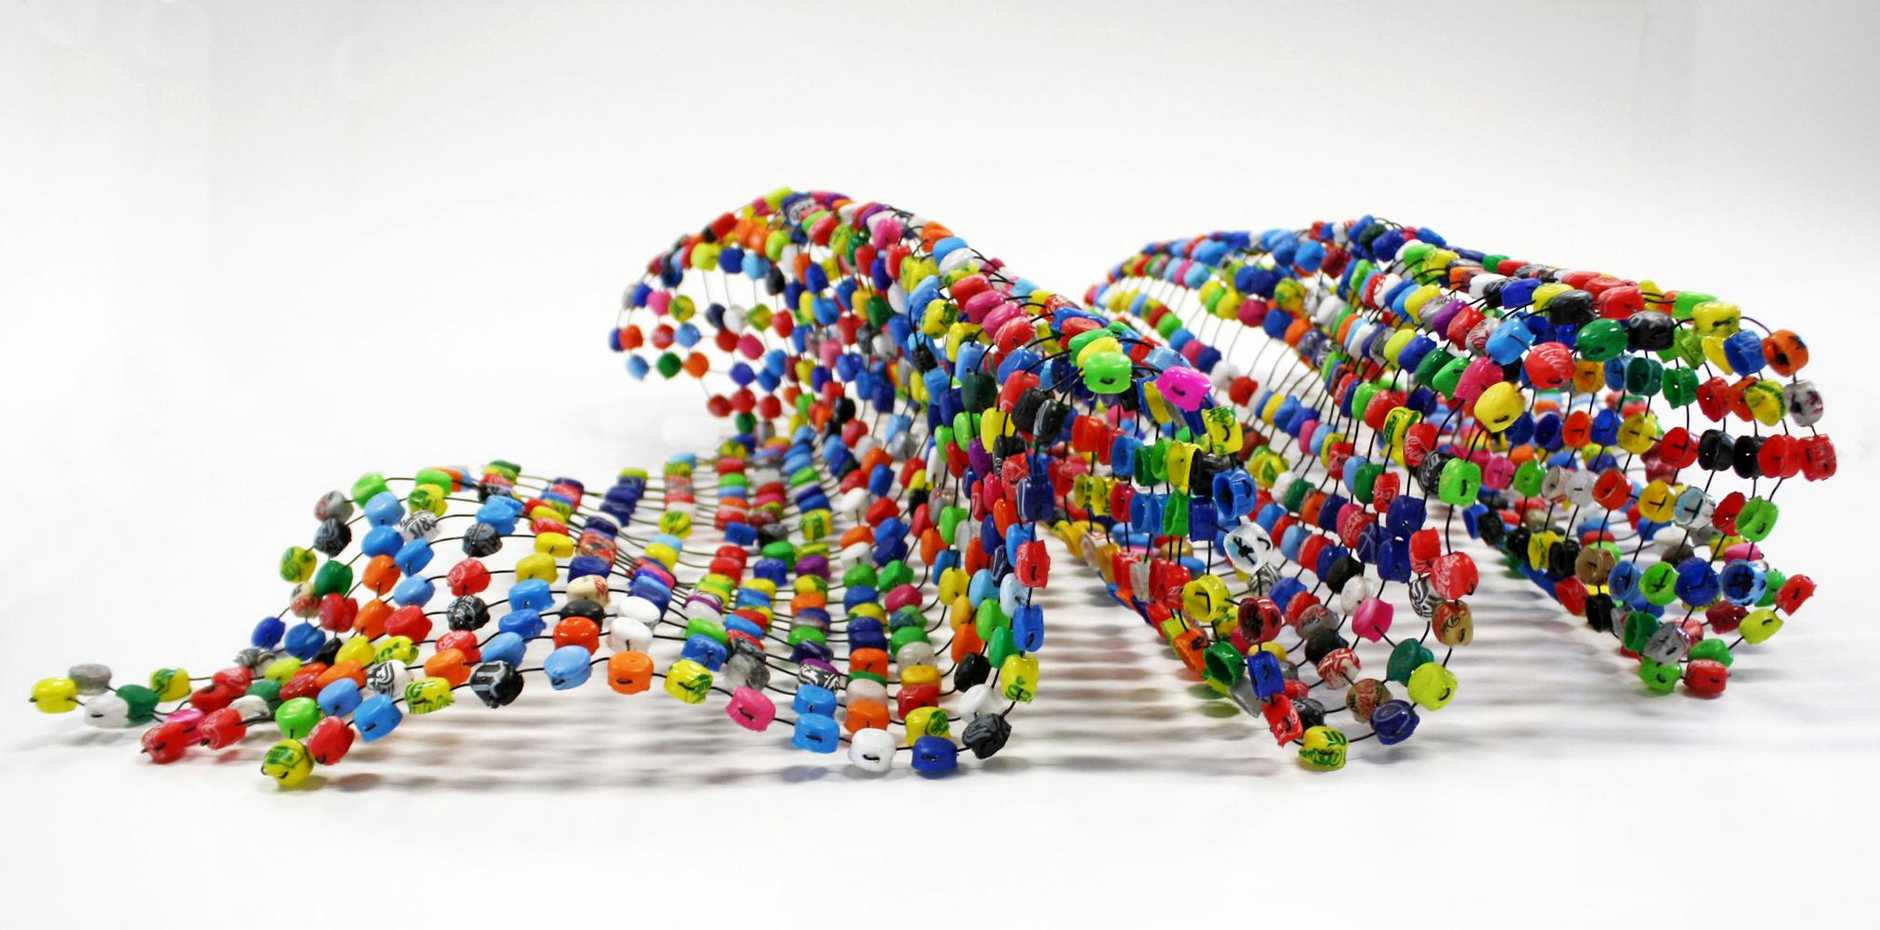 ENVIRONMENT AT HEART: Trickle, 2013: Up-cycled plastic lids, cable ties, and PVC by Alison McDonald.